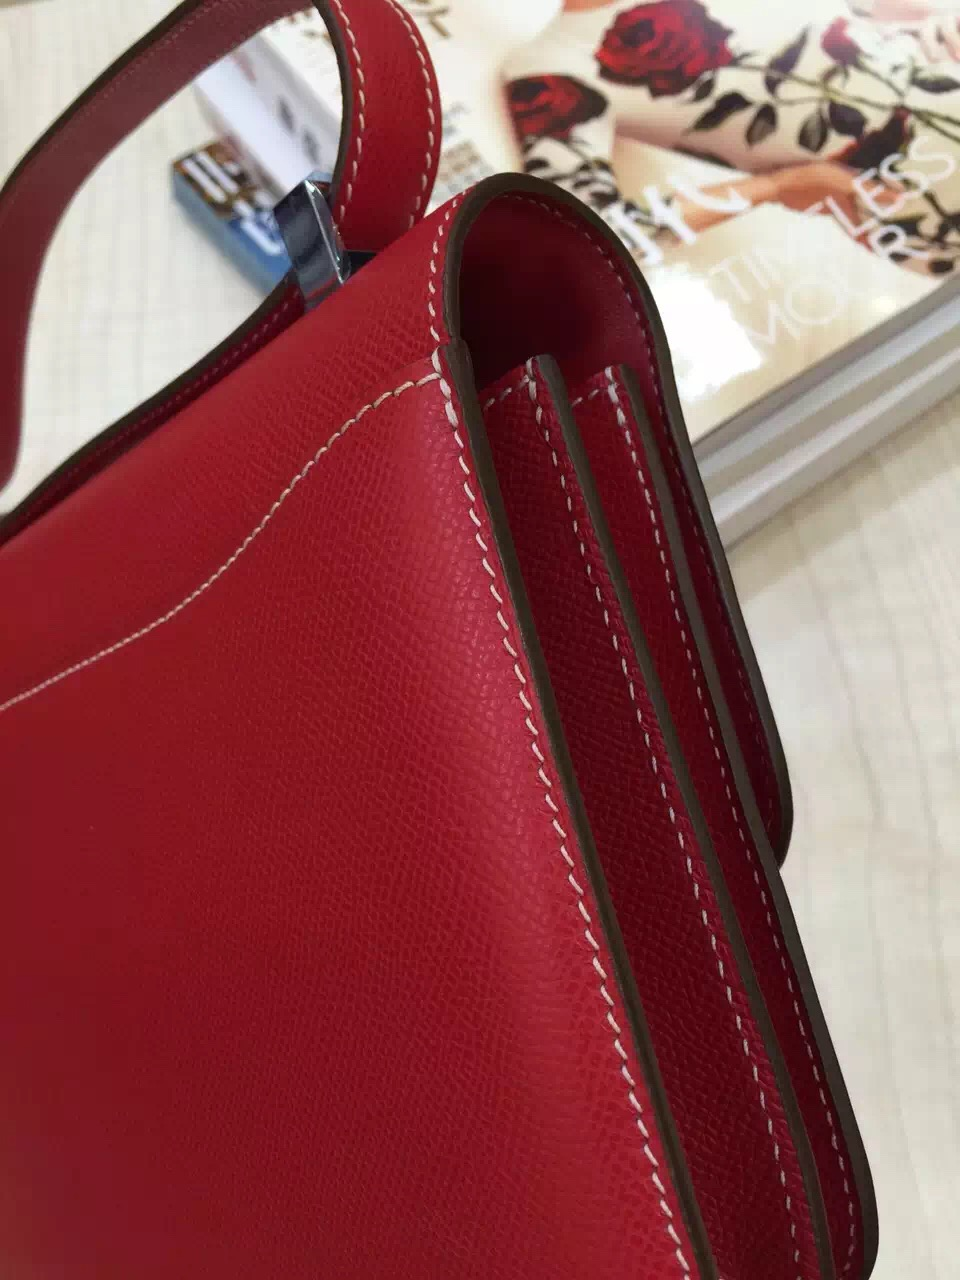 High Quality Hermes Epsom Leather Constance Bag 24CM in Red Color